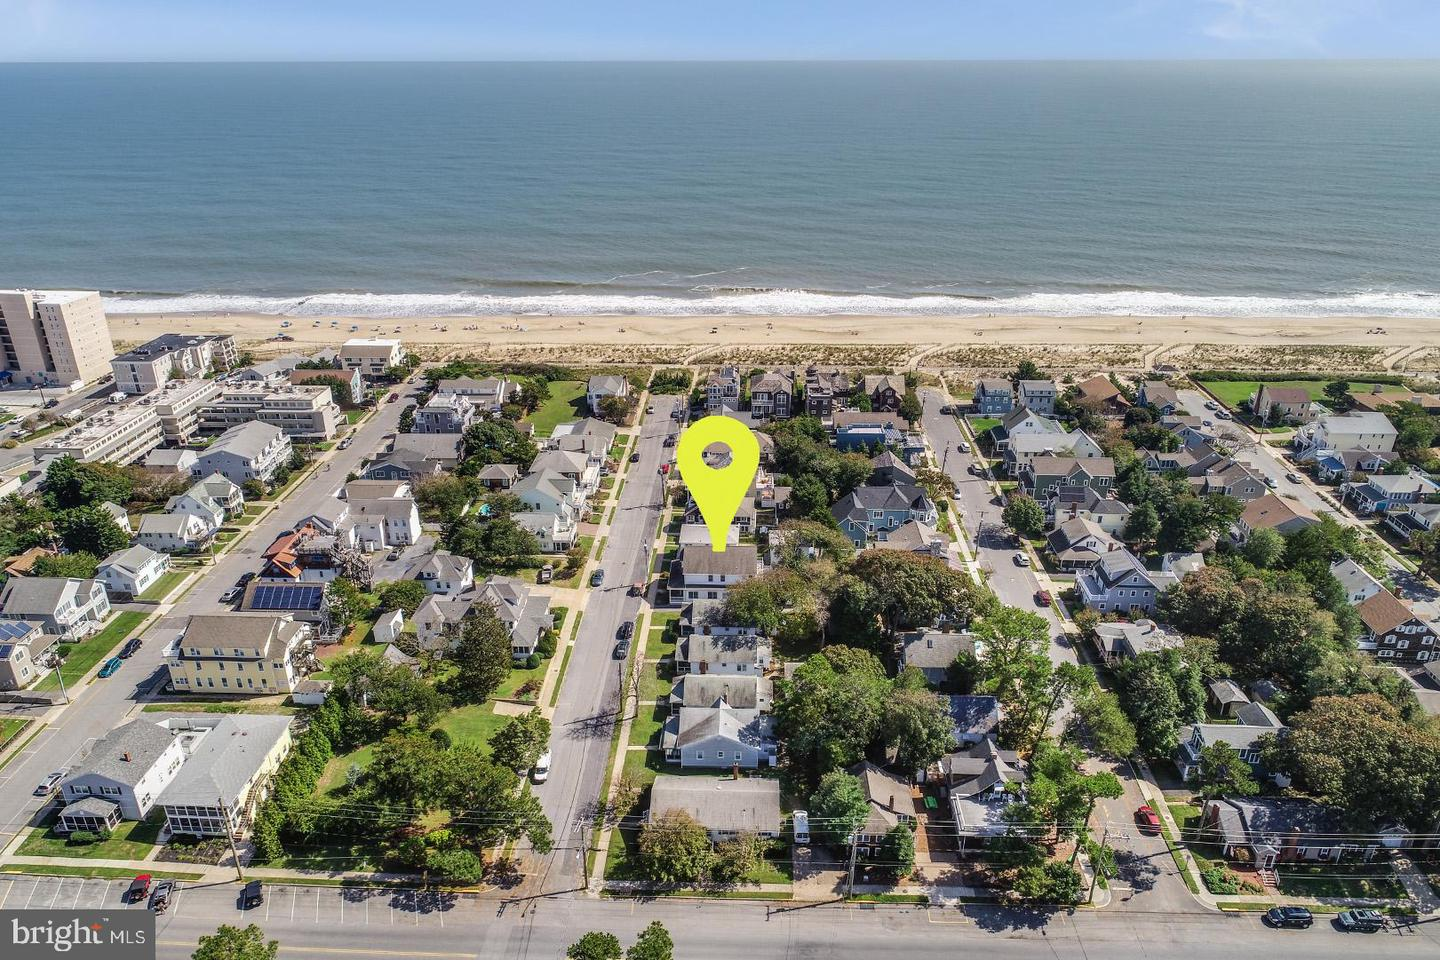 DESU139874-301711161731-2019-05-16-07-32-35 10 New Castle St | Rehoboth Beach, DE Real Estate For Sale | MLS# Desu139874  - Rehoboth Beach Real Estate - Bryce Lingo and Shaun Tull REALTORS, Rehoboth Beach, Delaware